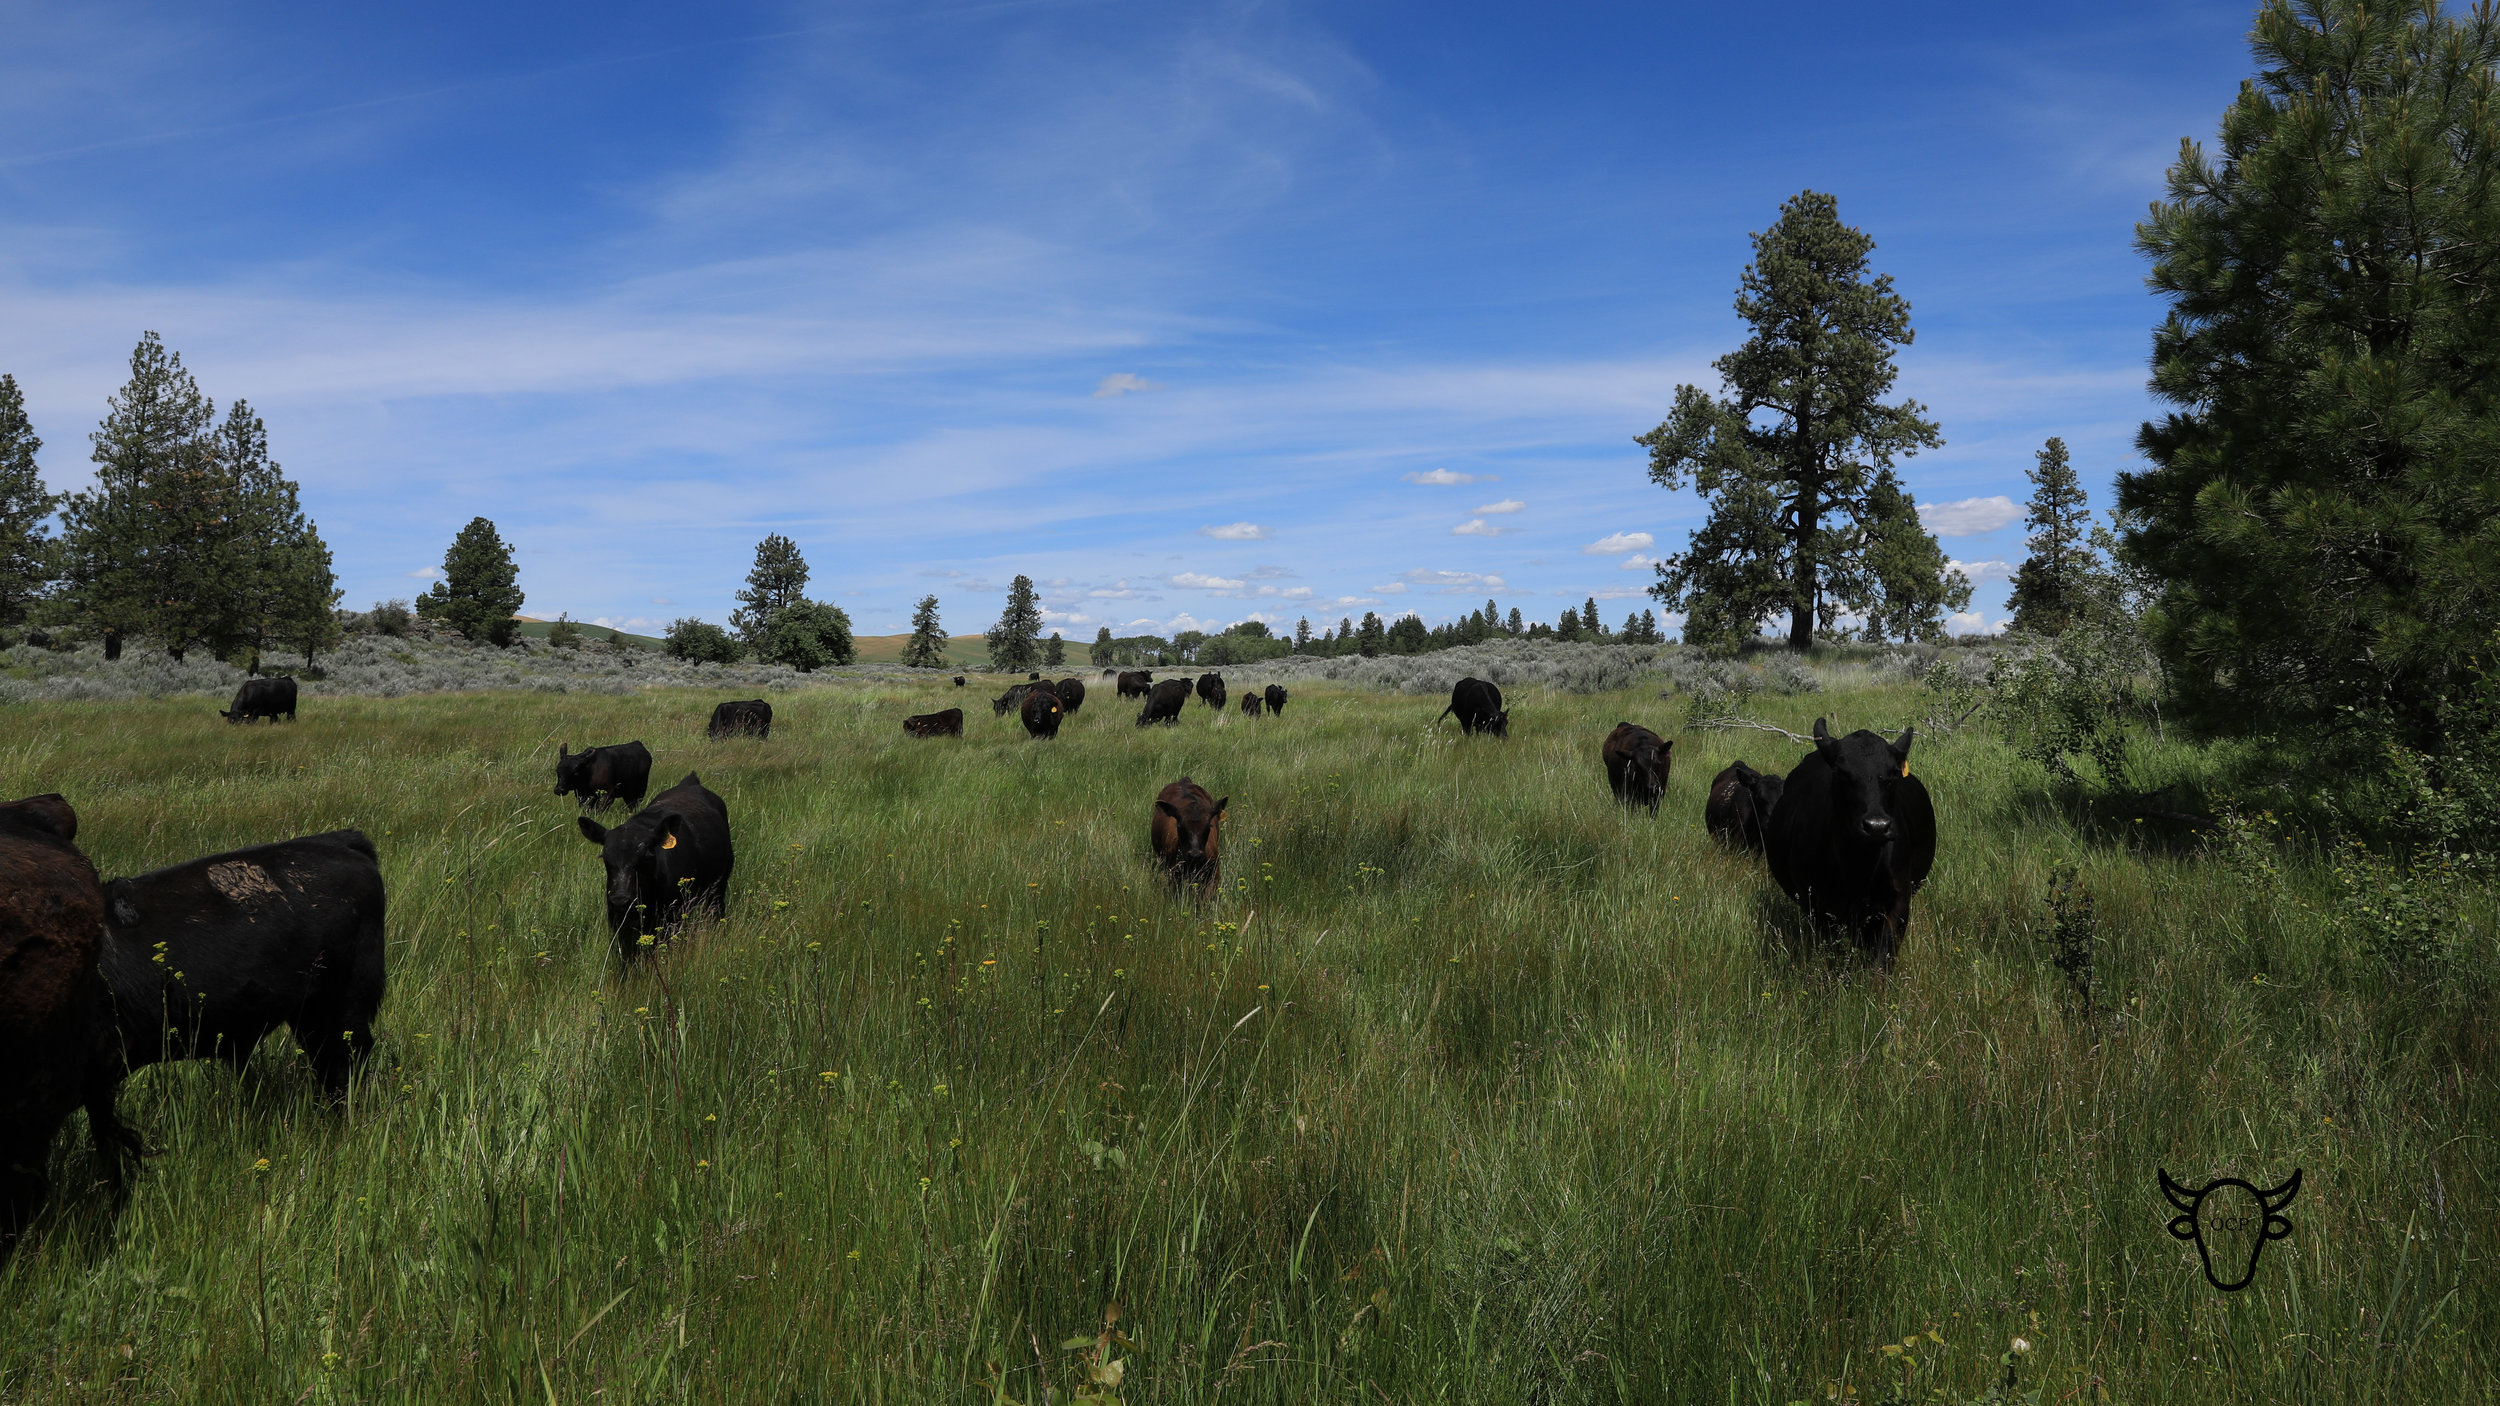 Our cows summer in some beautiful places.  Calves learn to stay with the herd, find water and shelter and avoid predators.  They also get used to trailing over rough and rocky terrain.